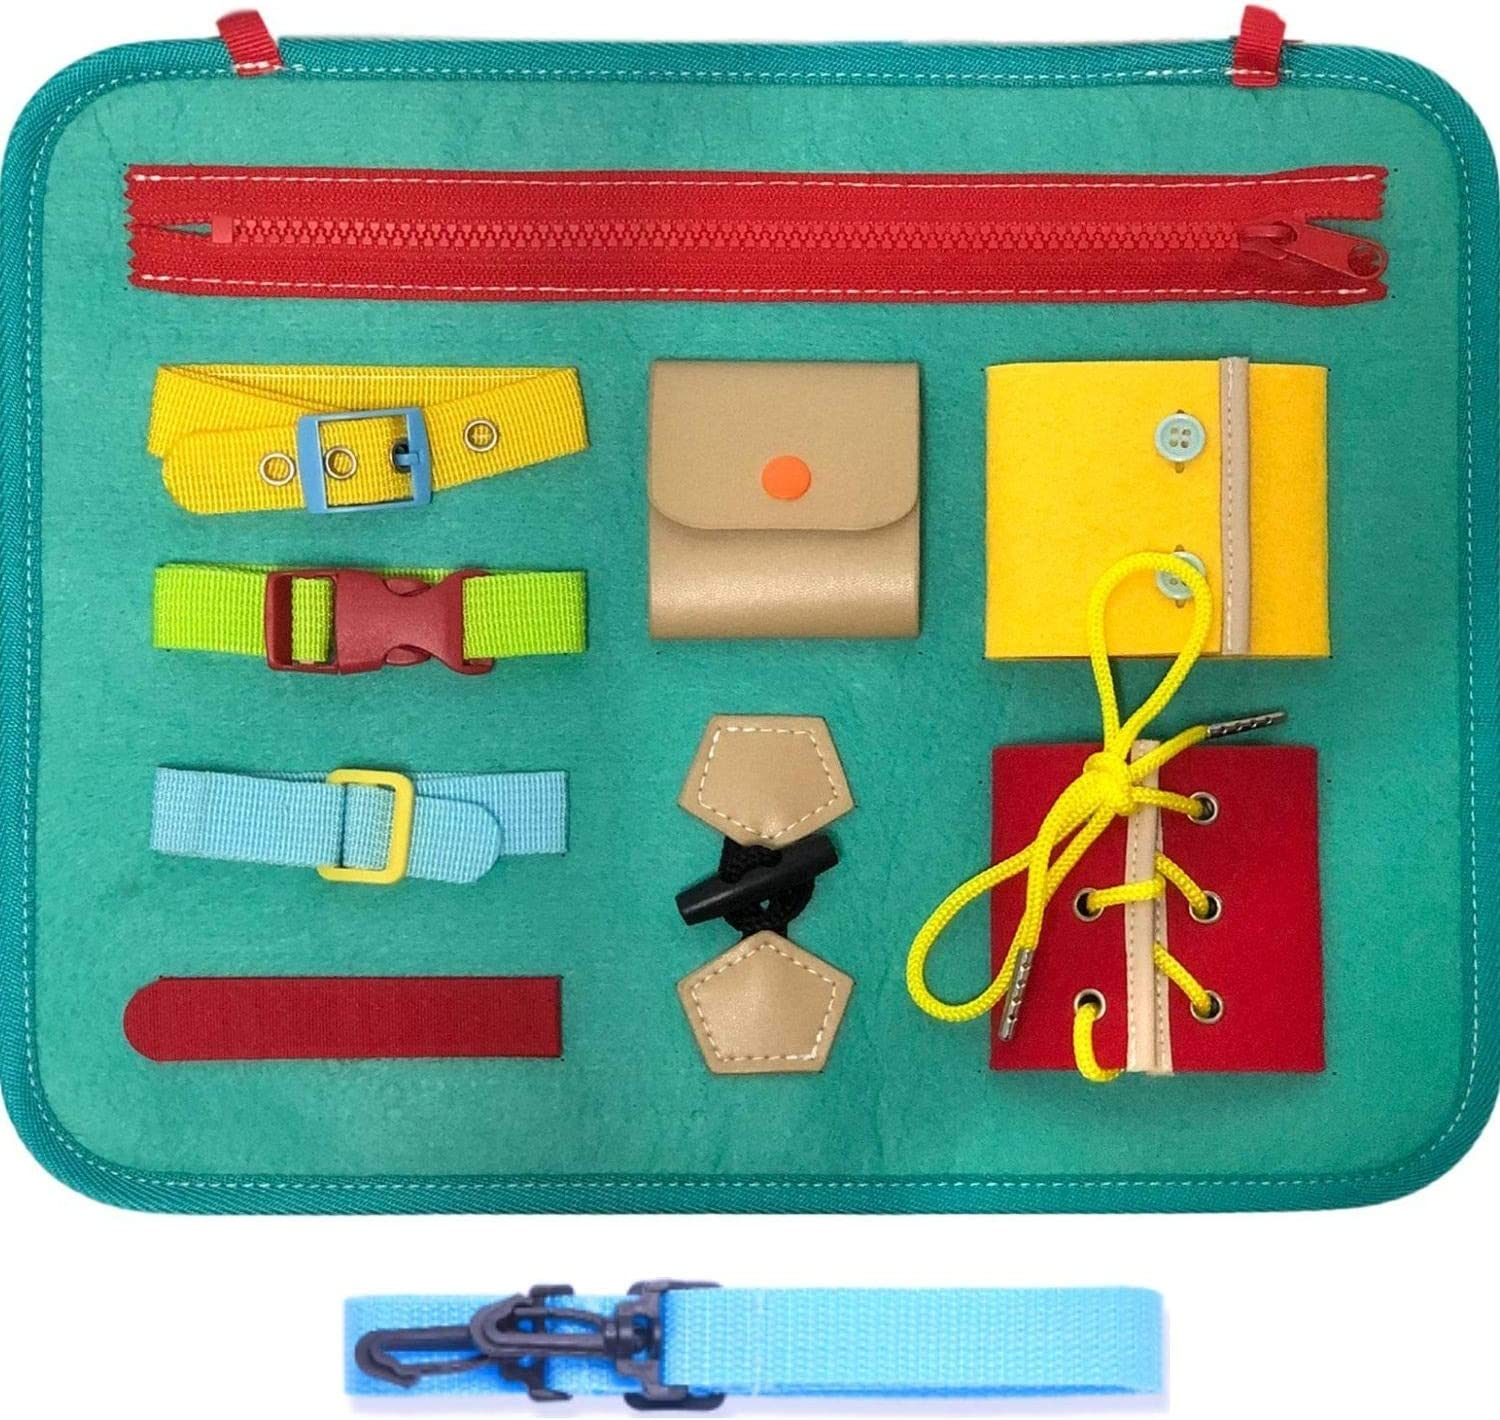 Educational Learning Toys Montessori Basic Skills Toddler Activity Board for Fine Motor Skills /& Learn to Dress FBve Busy Board for Toddlers